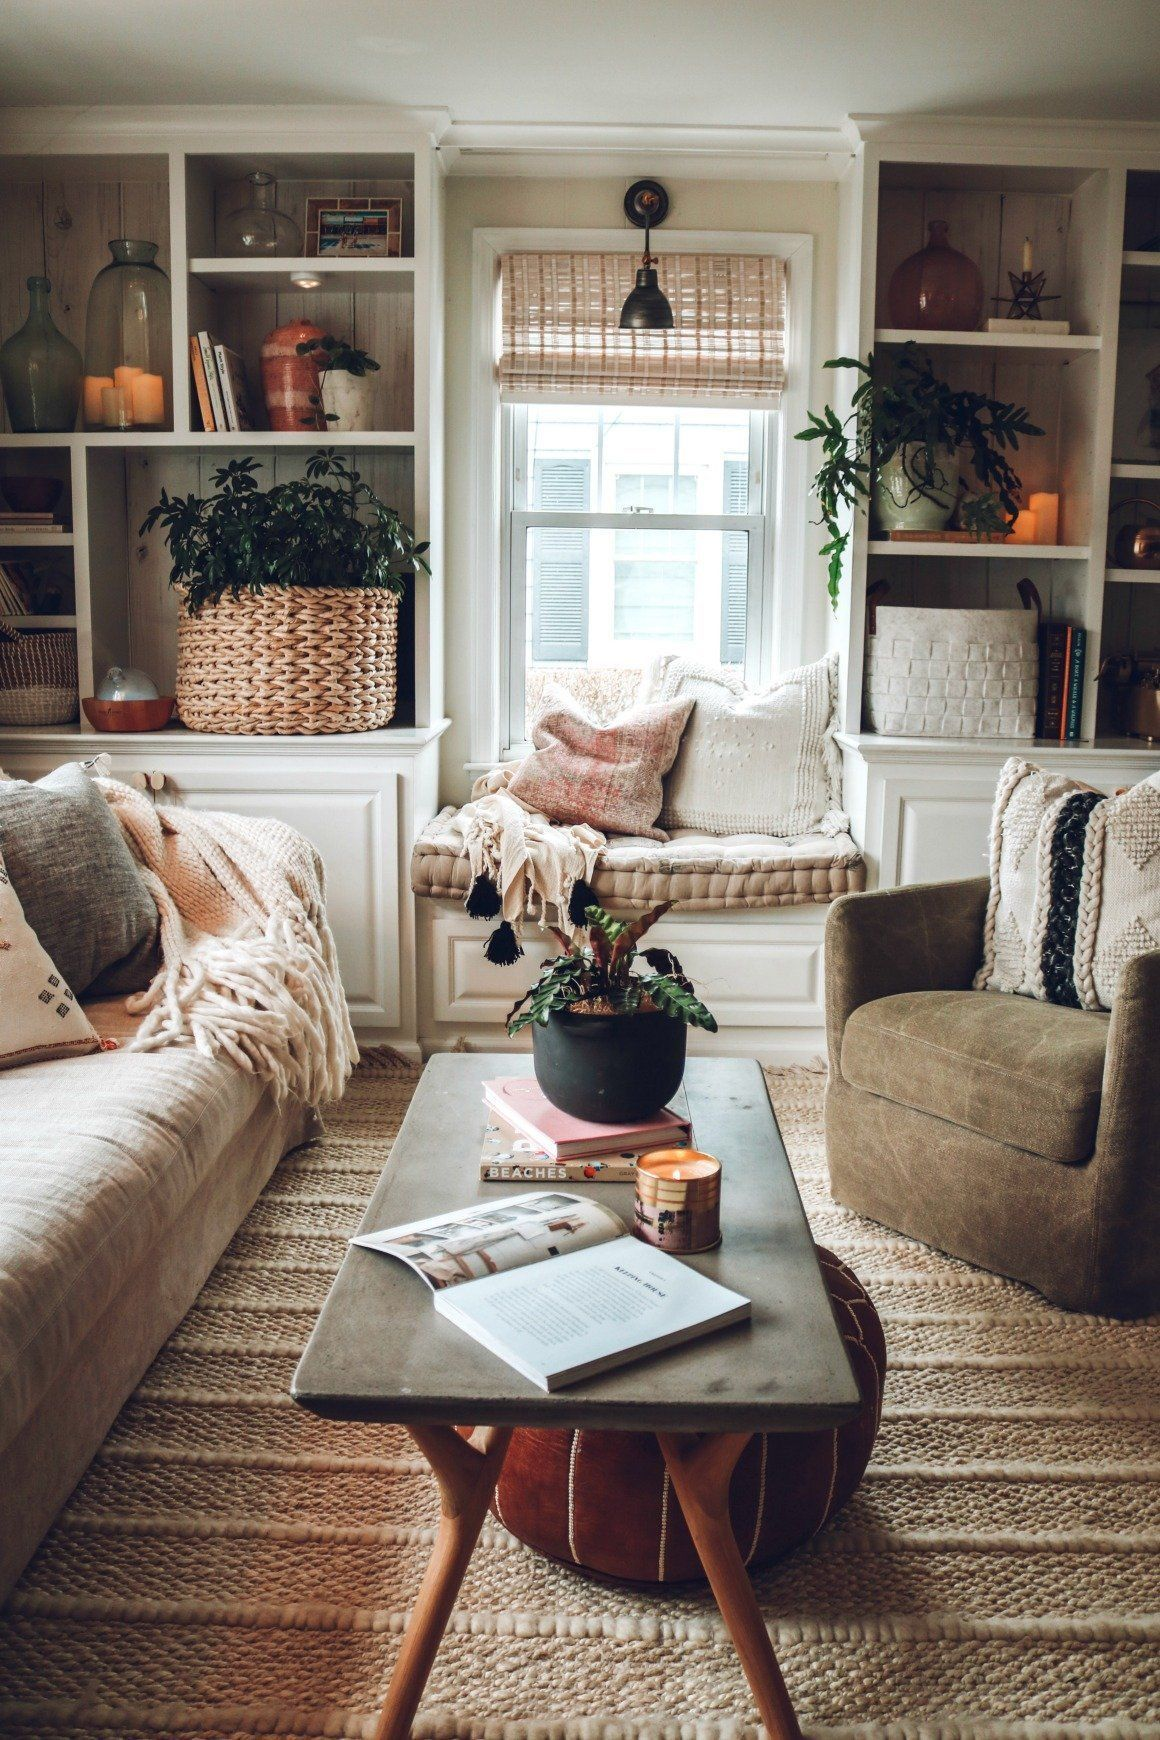 Small Living Room Ideas That Are Affordable In This Blog Post I M Sharing Our New Living Room Rug W Rugs In Living Room Small Living Rooms Small Living Room